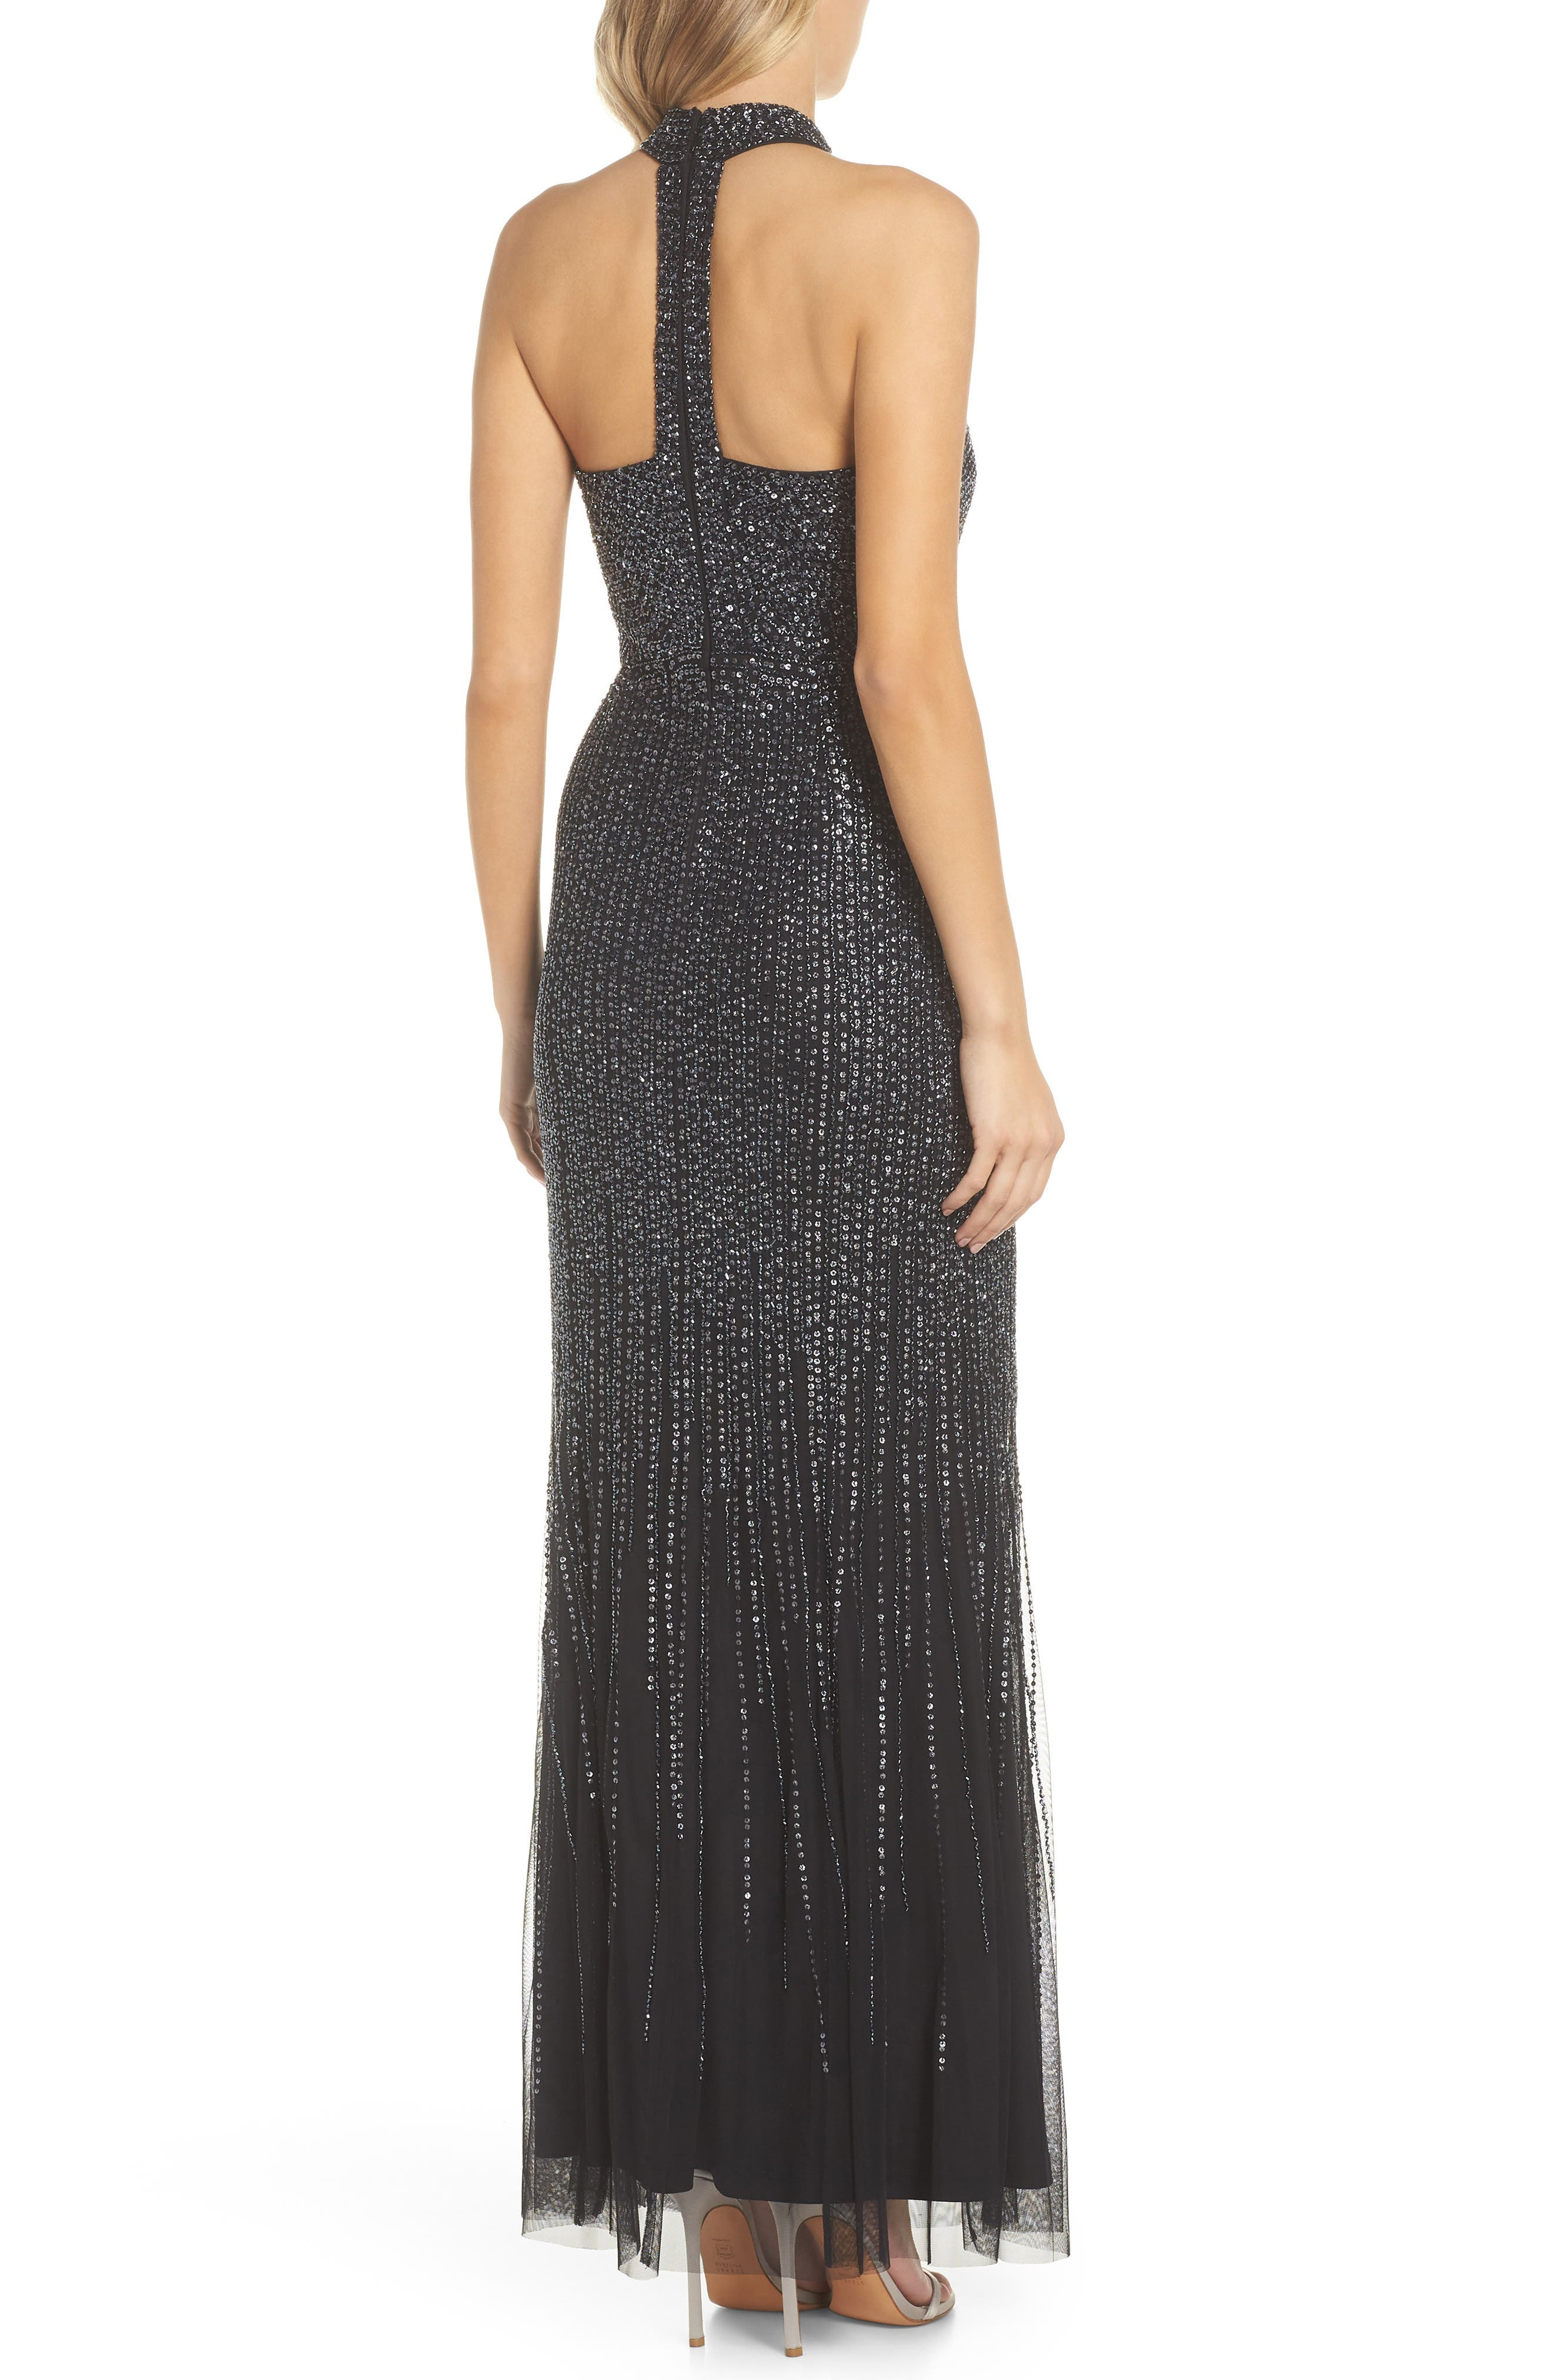 ADRIANNA PAPELL,                             Beaded Halter Gown,                             Alternate thumbnail 2, color,                             001